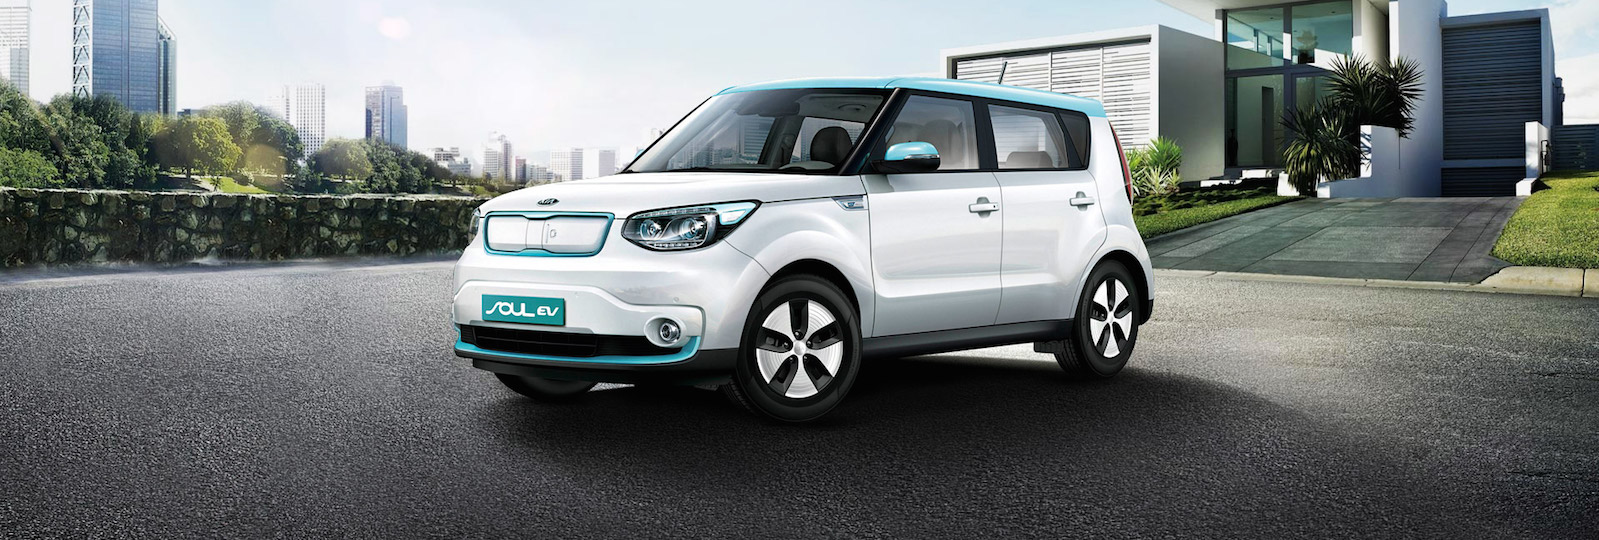 xkia-soul-ev-1599-540.png,qoriginalExtension=jpg.pagespeed.ic.HoF3rKnRAk.jpg